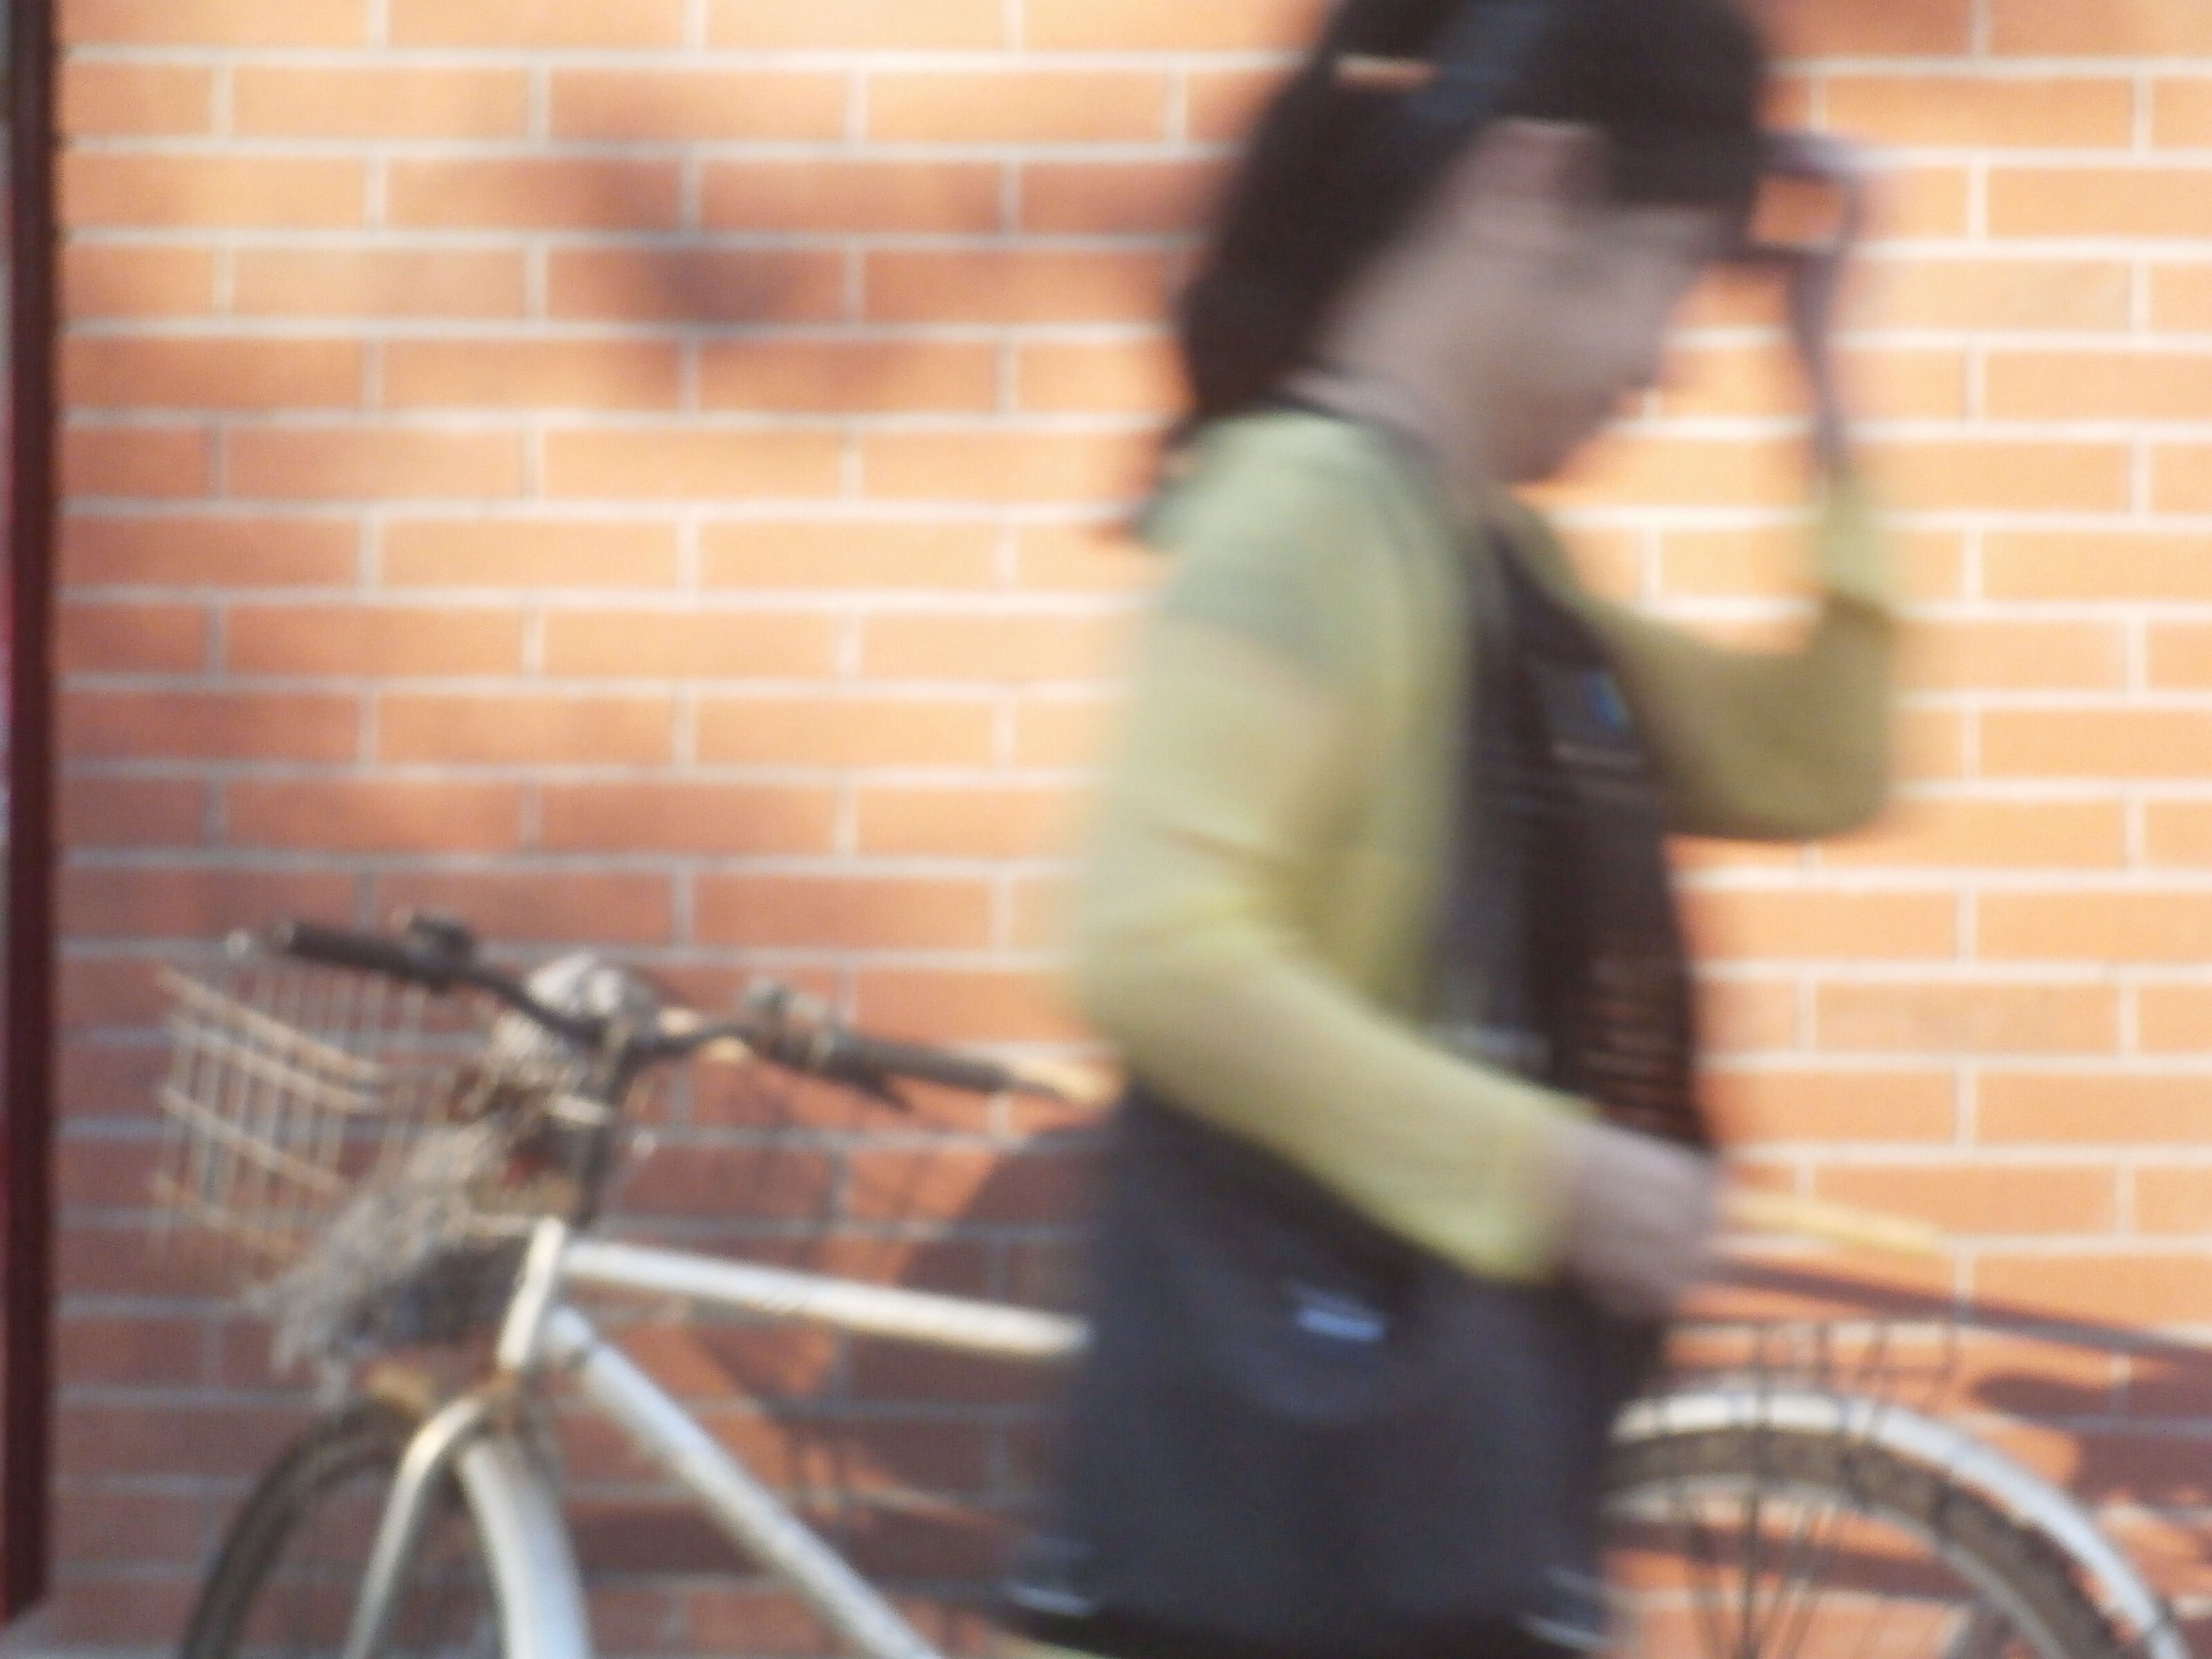 blurred motion, bicycle, men, transportation, lifestyles, walking, on the move, motion, street, wall - building feature, railing, leisure activity, cycling, land vehicle, riding, person, outdoors, city life